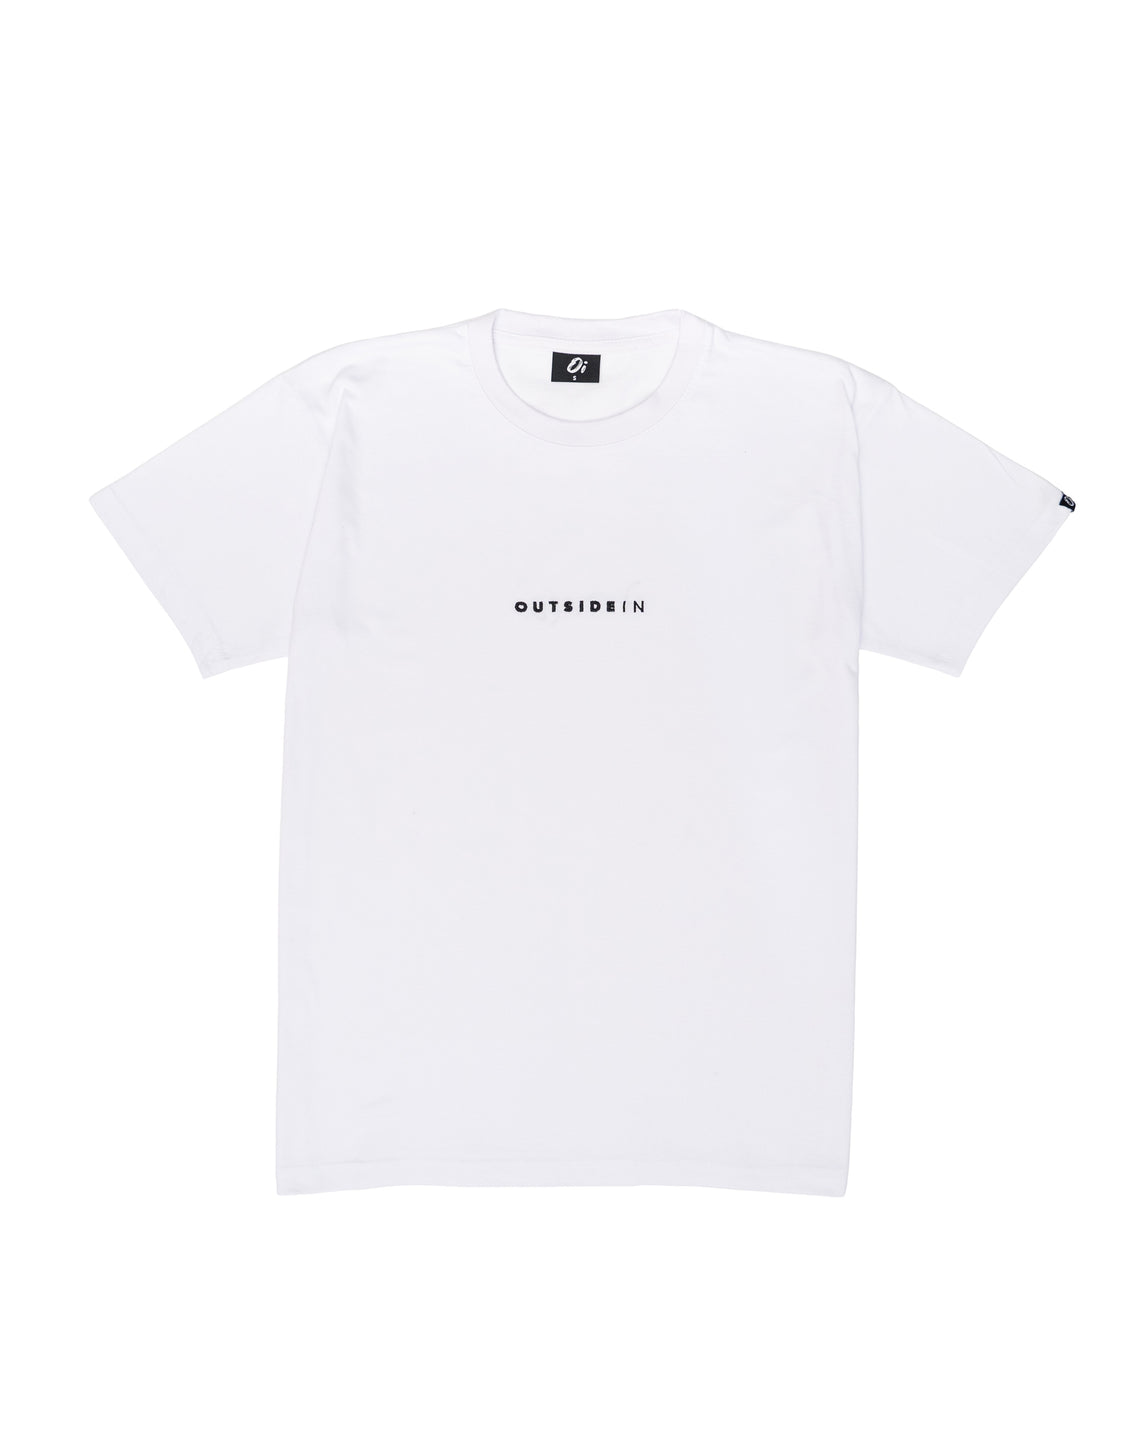 Essential White T-Shirt - OutsideIn